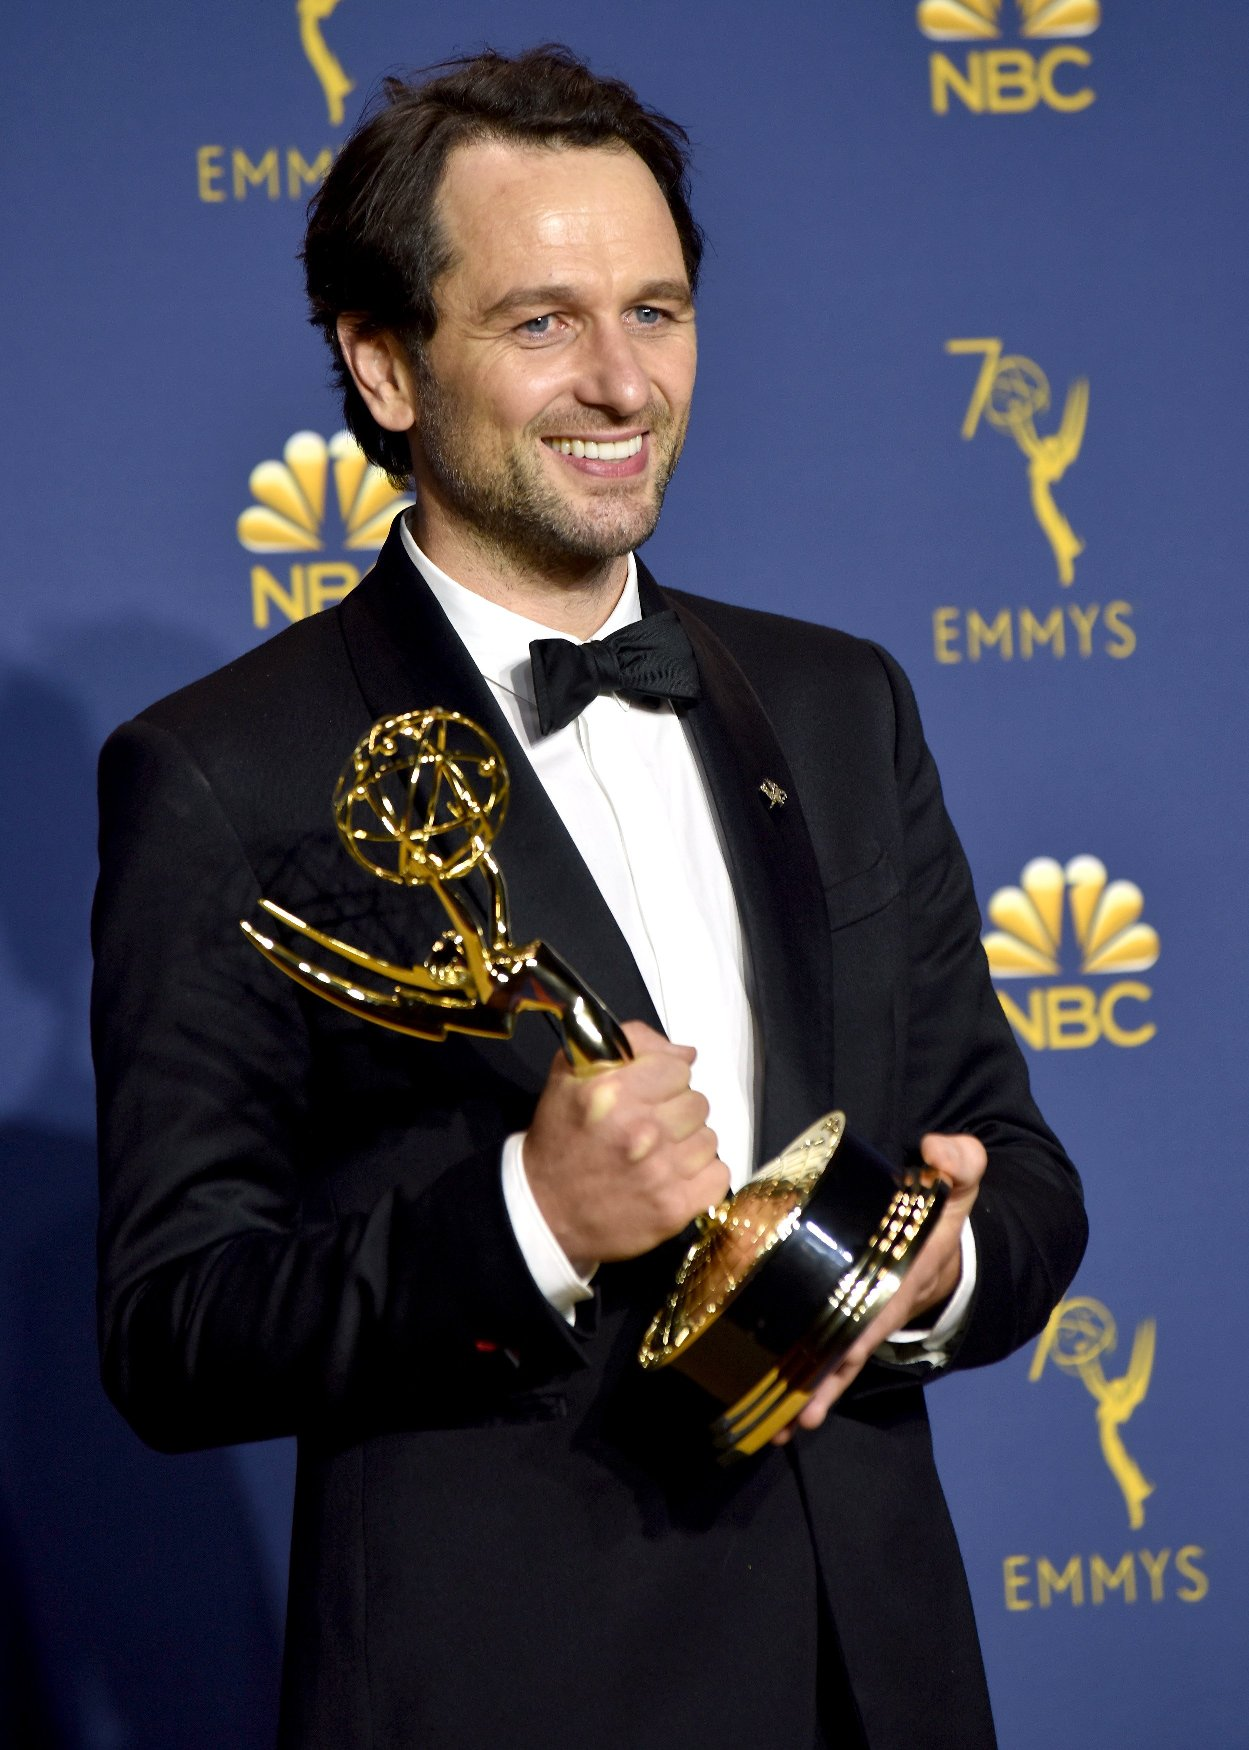 Matthew Rhys, winner of the award for Outstanding Lead Actor in a Drama Series for